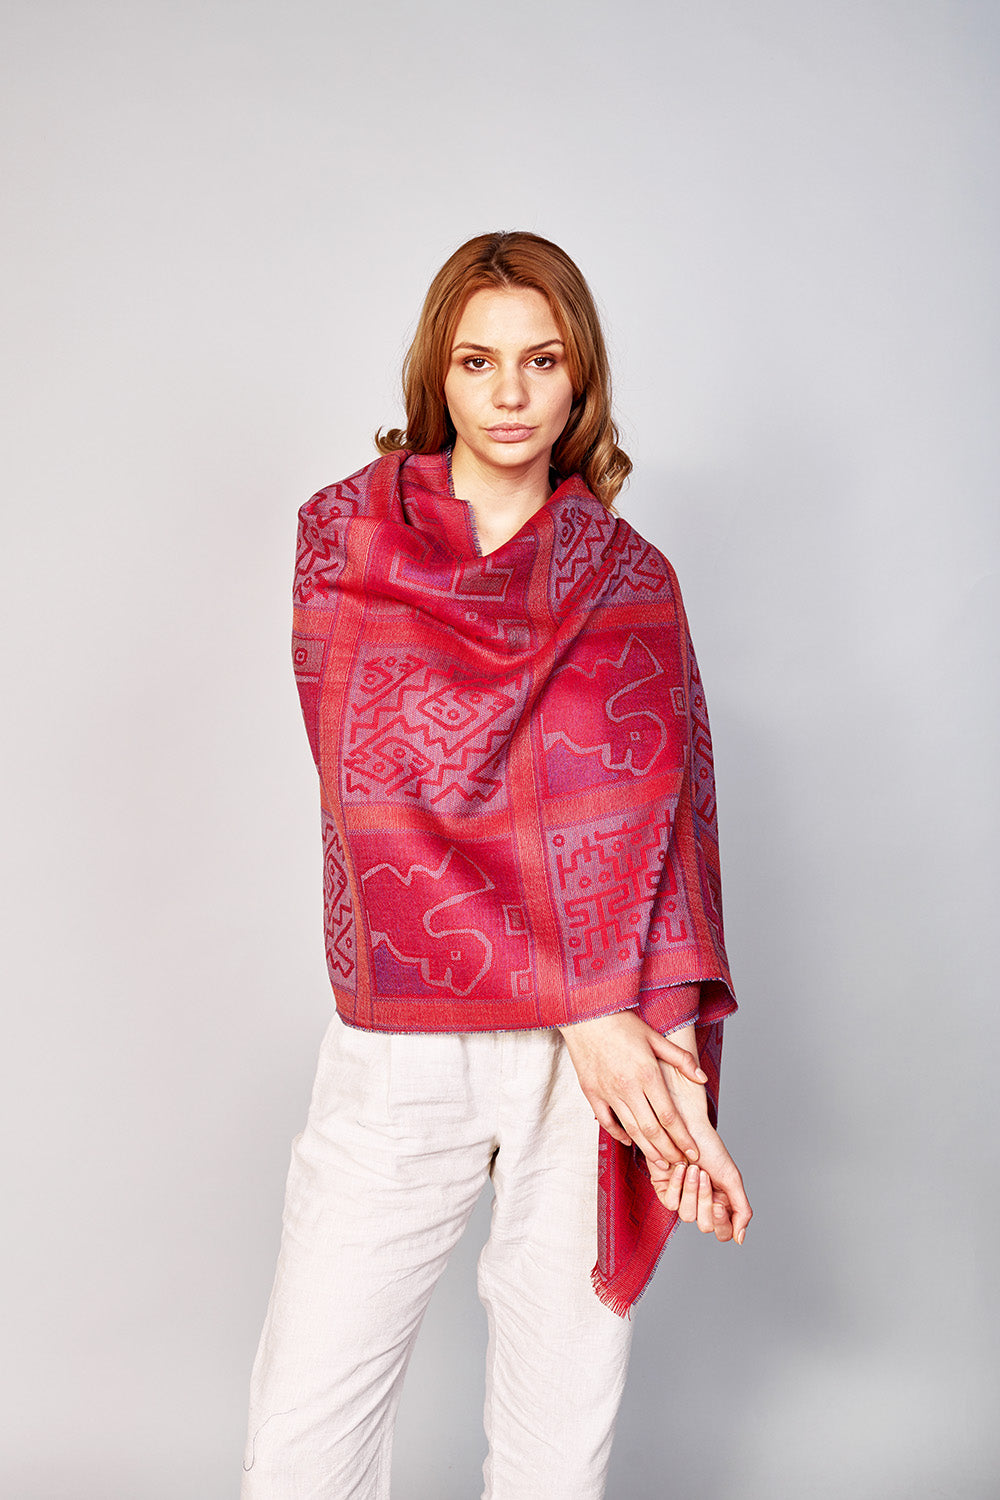 Chancay Little Windows Shawl